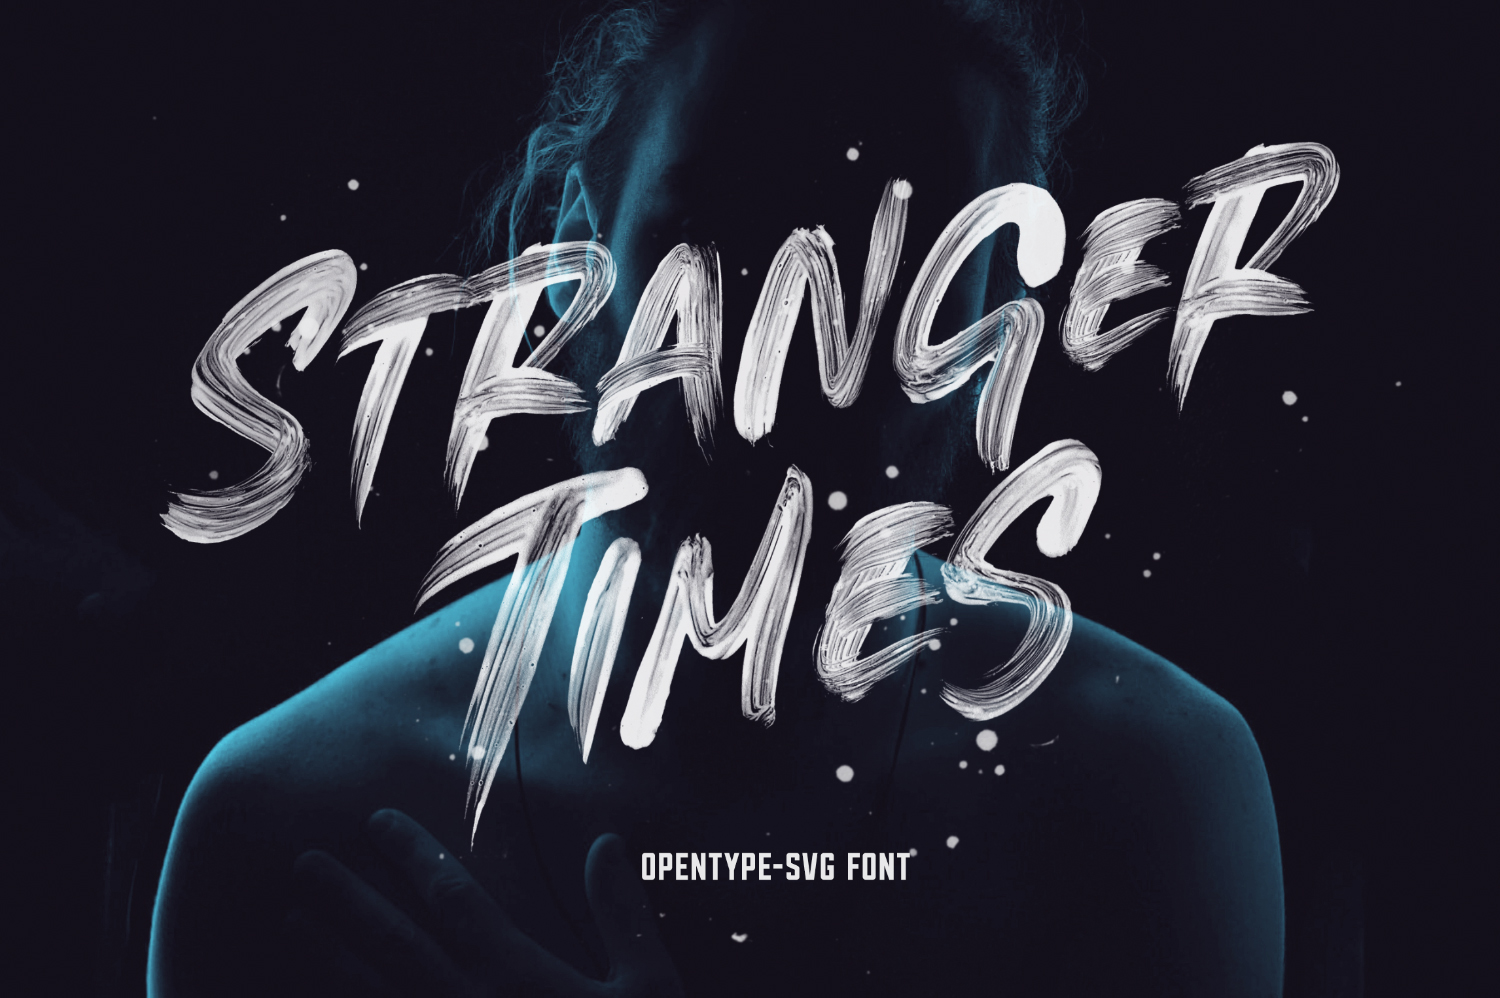 Stranger Times - Opentype SVG - Available on Creative Market